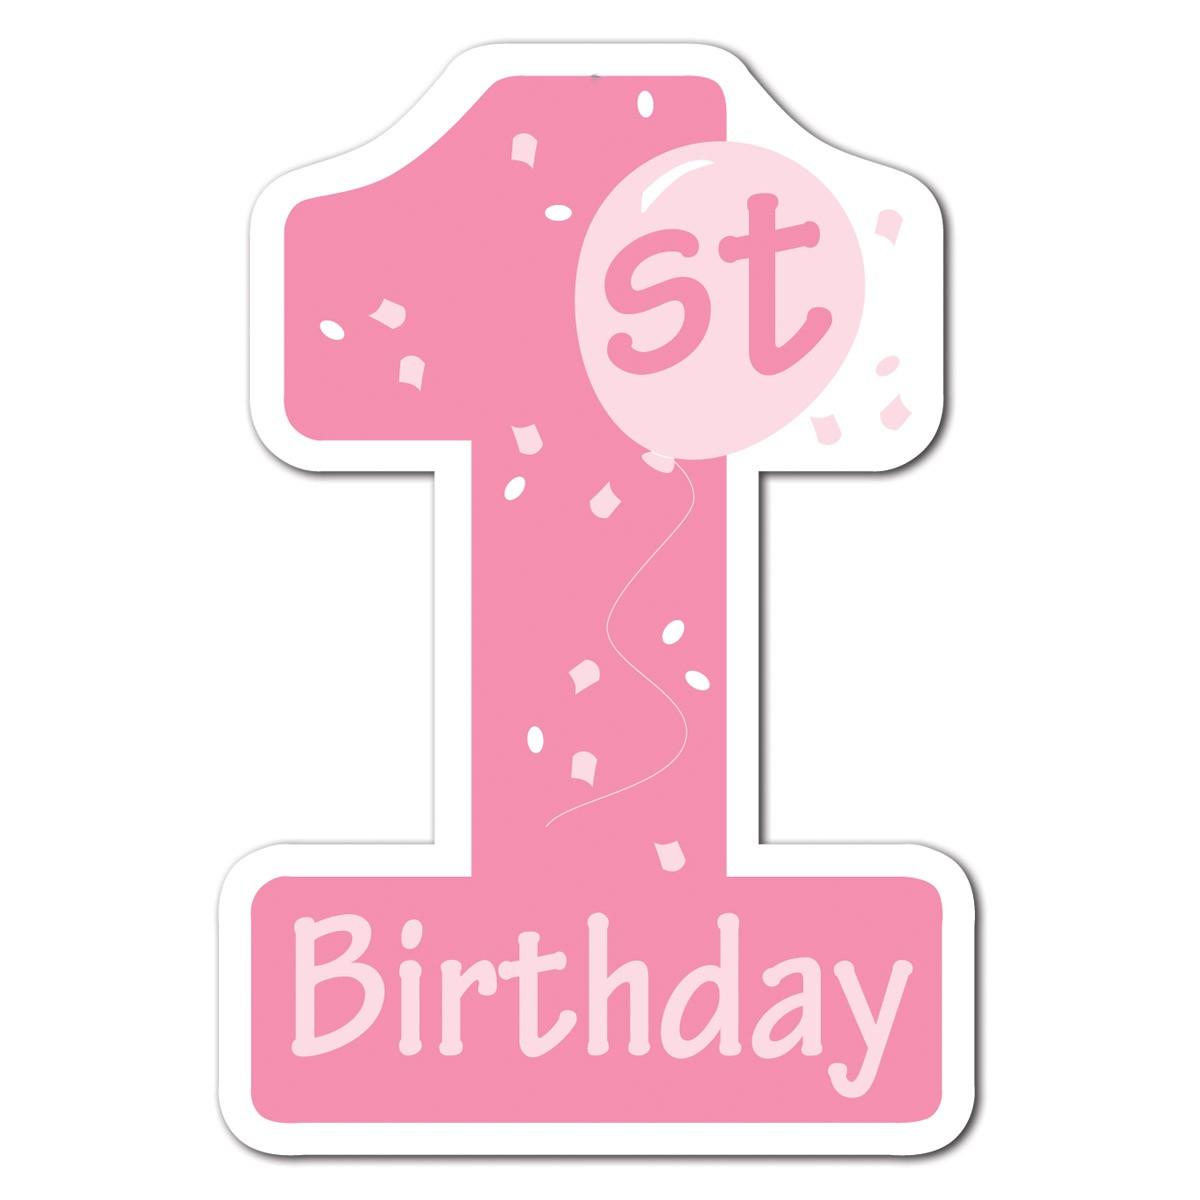 1st birthday clipart ; 1652114